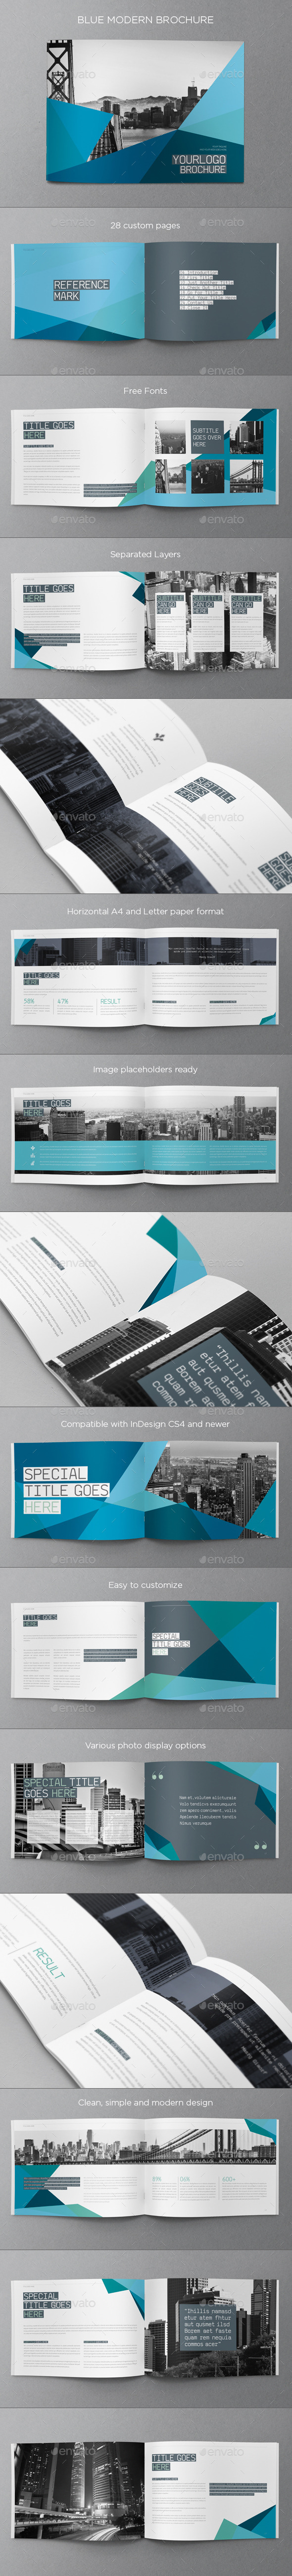 GraphicRiver Blue Modern Brochure 8852088